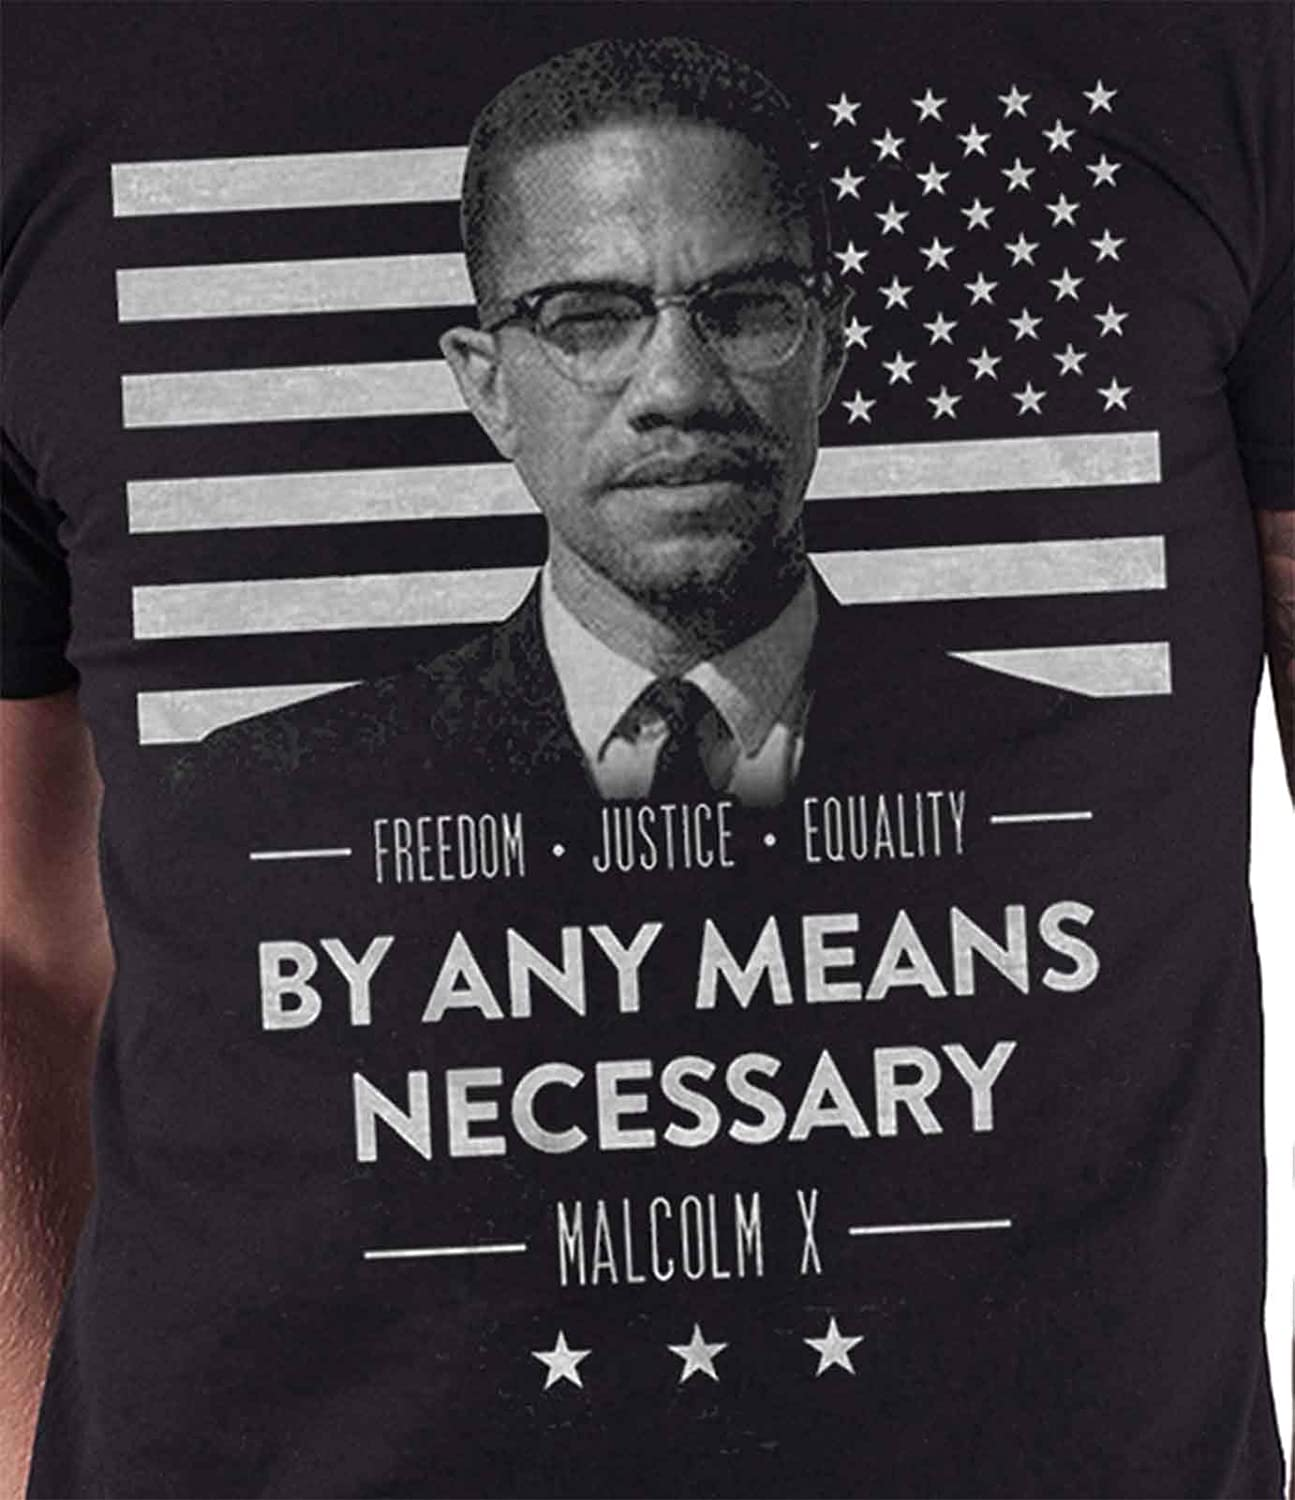 TinhCD Store Cool Malcolm X by Any Means Necessary T-Shirt Retro 90s Drama Movie for Daddy Husband T-Shirt